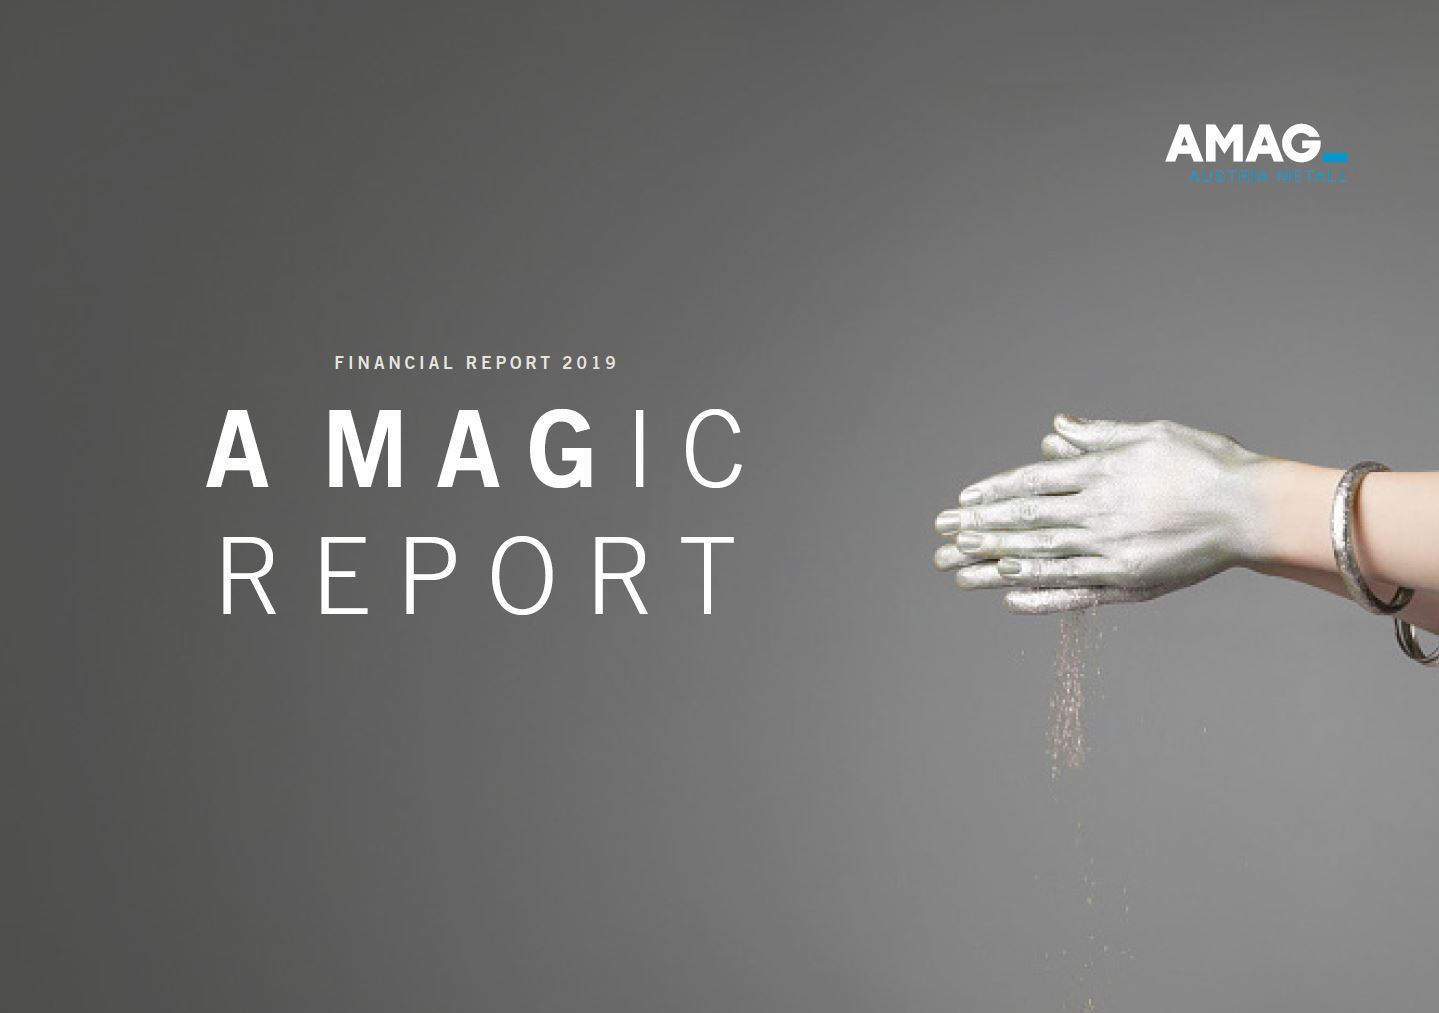 Annual Report 2019 - Financial Report